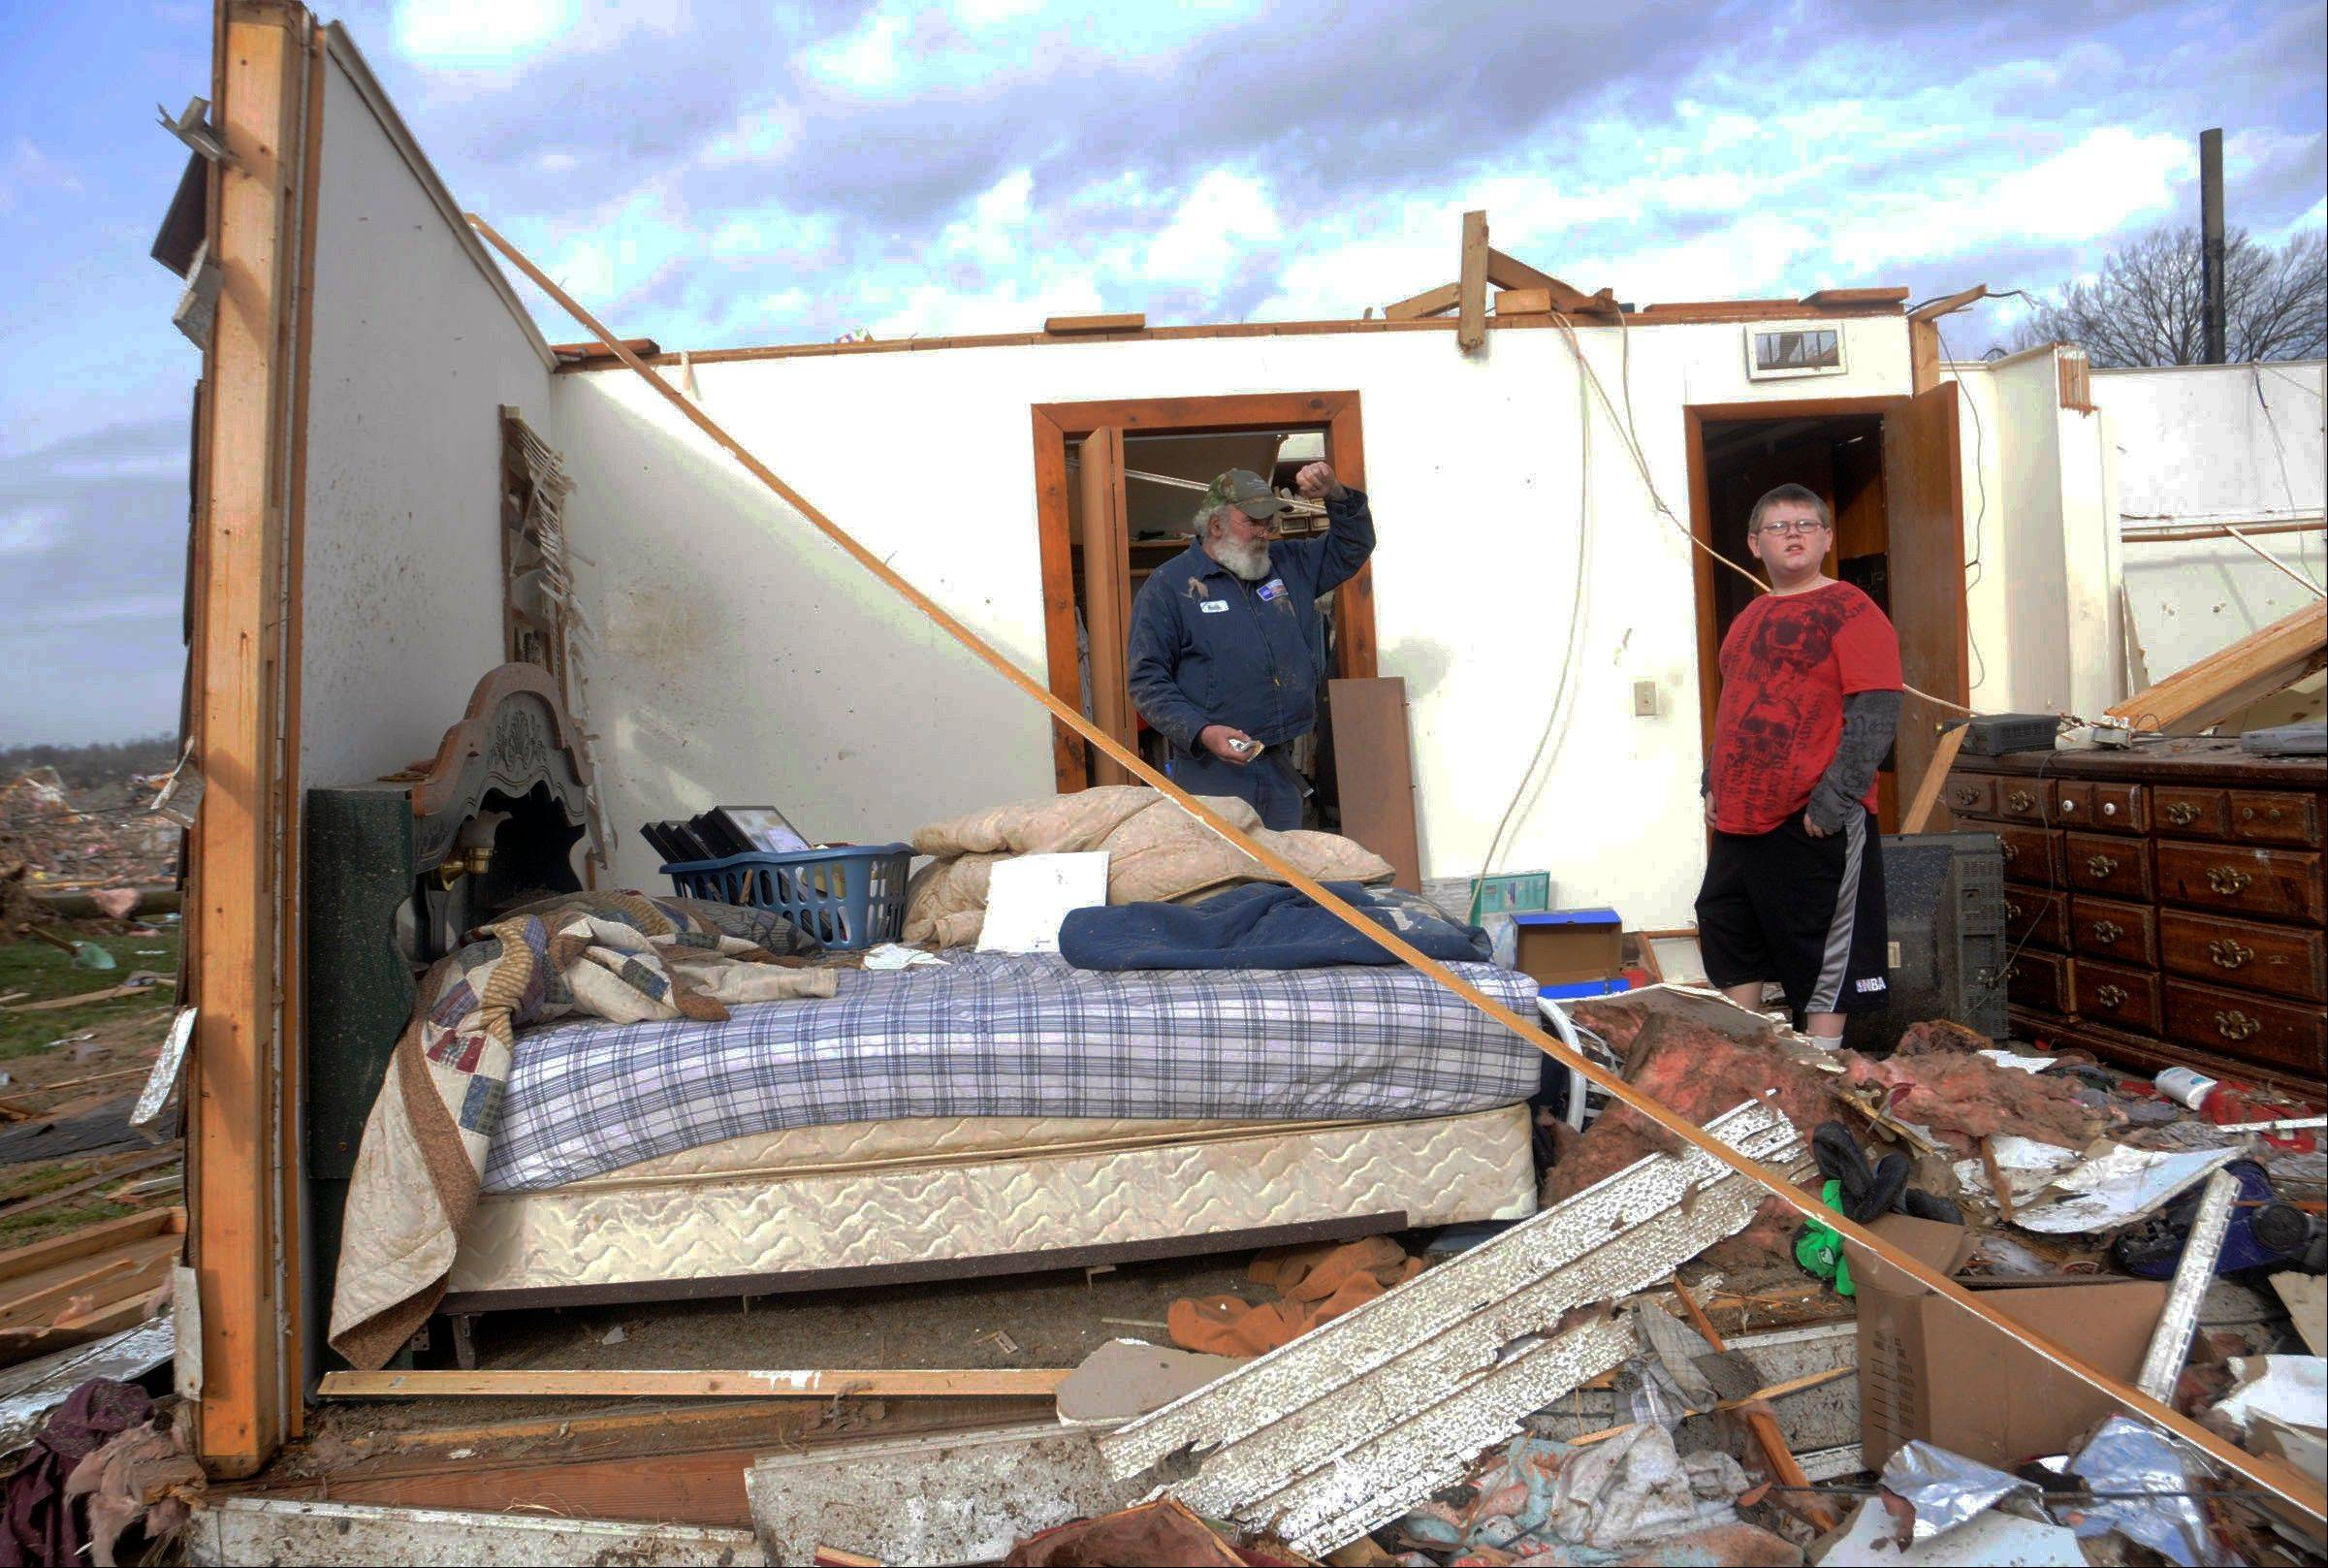 Keith Hucke, left, and Devyn Byrd, 14, survey the damage sustained to Hucke's house after a severe storm hit in the early morning hours on Wednesday, Feb. 29, 2012, in Harrisrbug, Ill. Hucke said he was in his bed when the wall right next to him collapsed during the storm. A severe pre-dawn storm pounded portions of southern Illinois on Wednesday. Several deaths have been reported in Harrisburg and left the city's medical center scrambling to treat an influx of injured, the hospital's top administrator said.